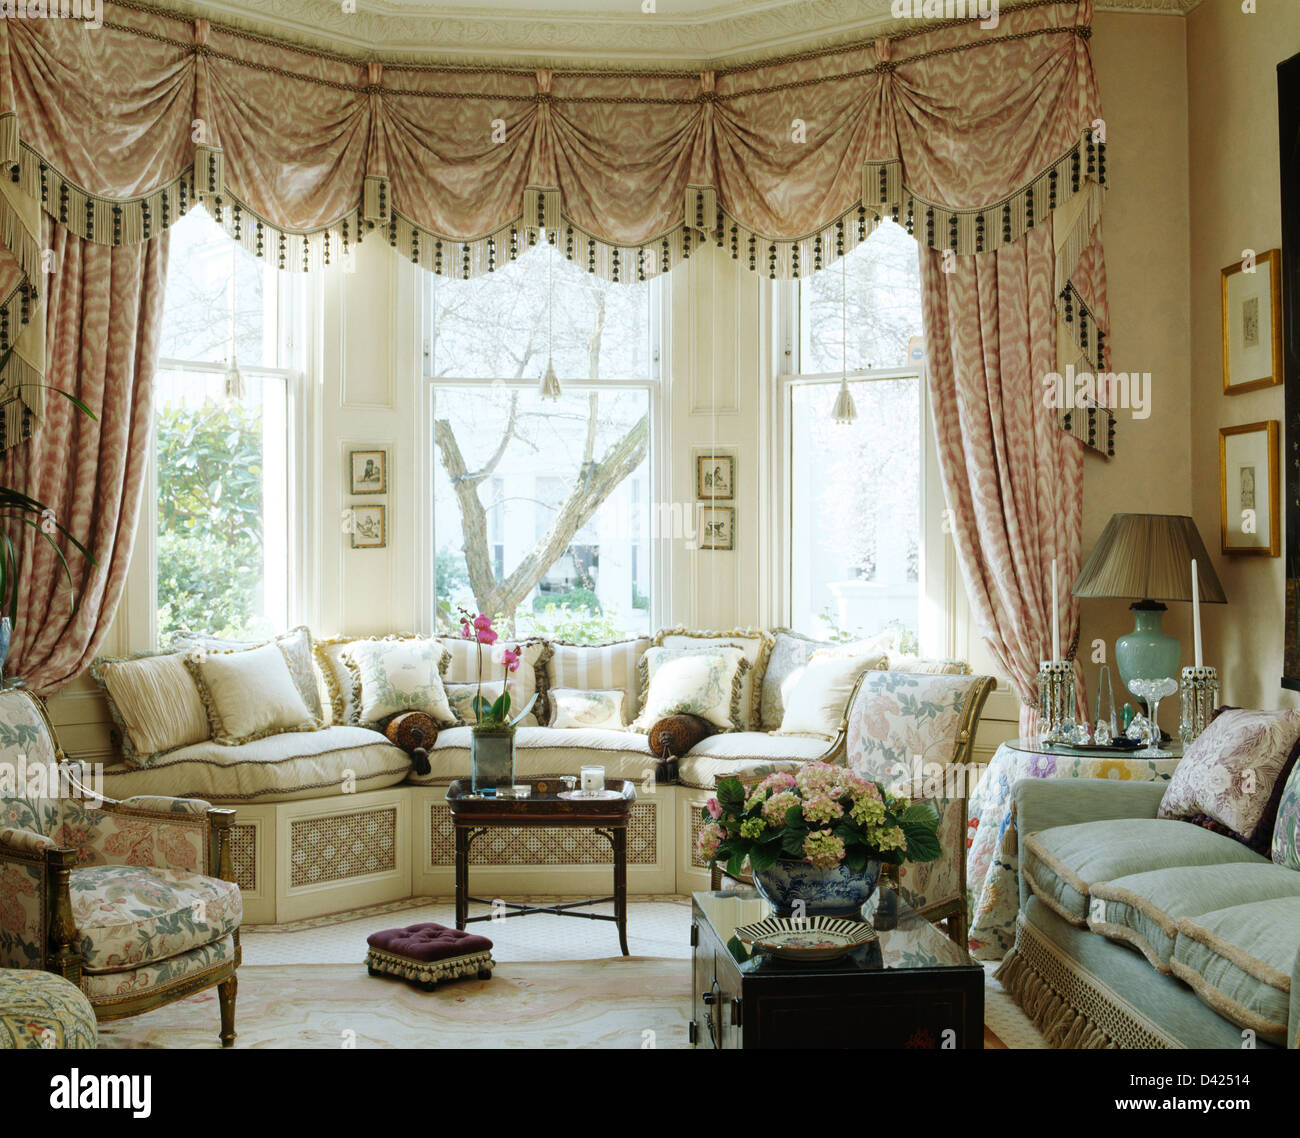 Swagged+tailed Silk Curtains On Bay Window Above Window Seat With Cream  Cushions In Townhouse Drawing Room With Comfortable Sofa